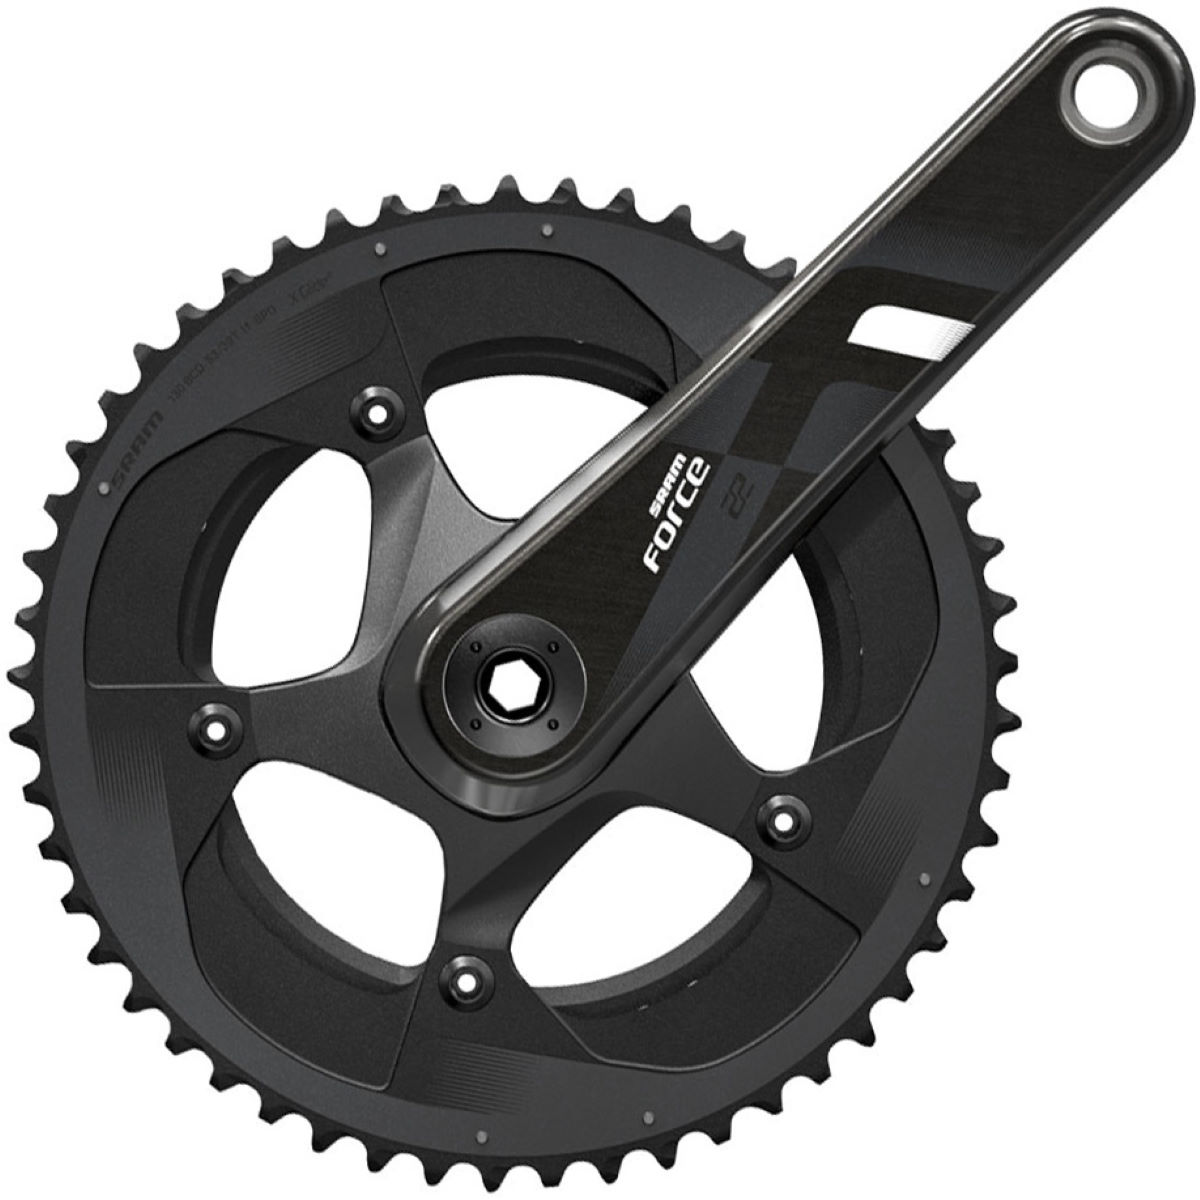 Sram Force 22 Gxp Compact Chainset - 53.39t 170mm Black/grey